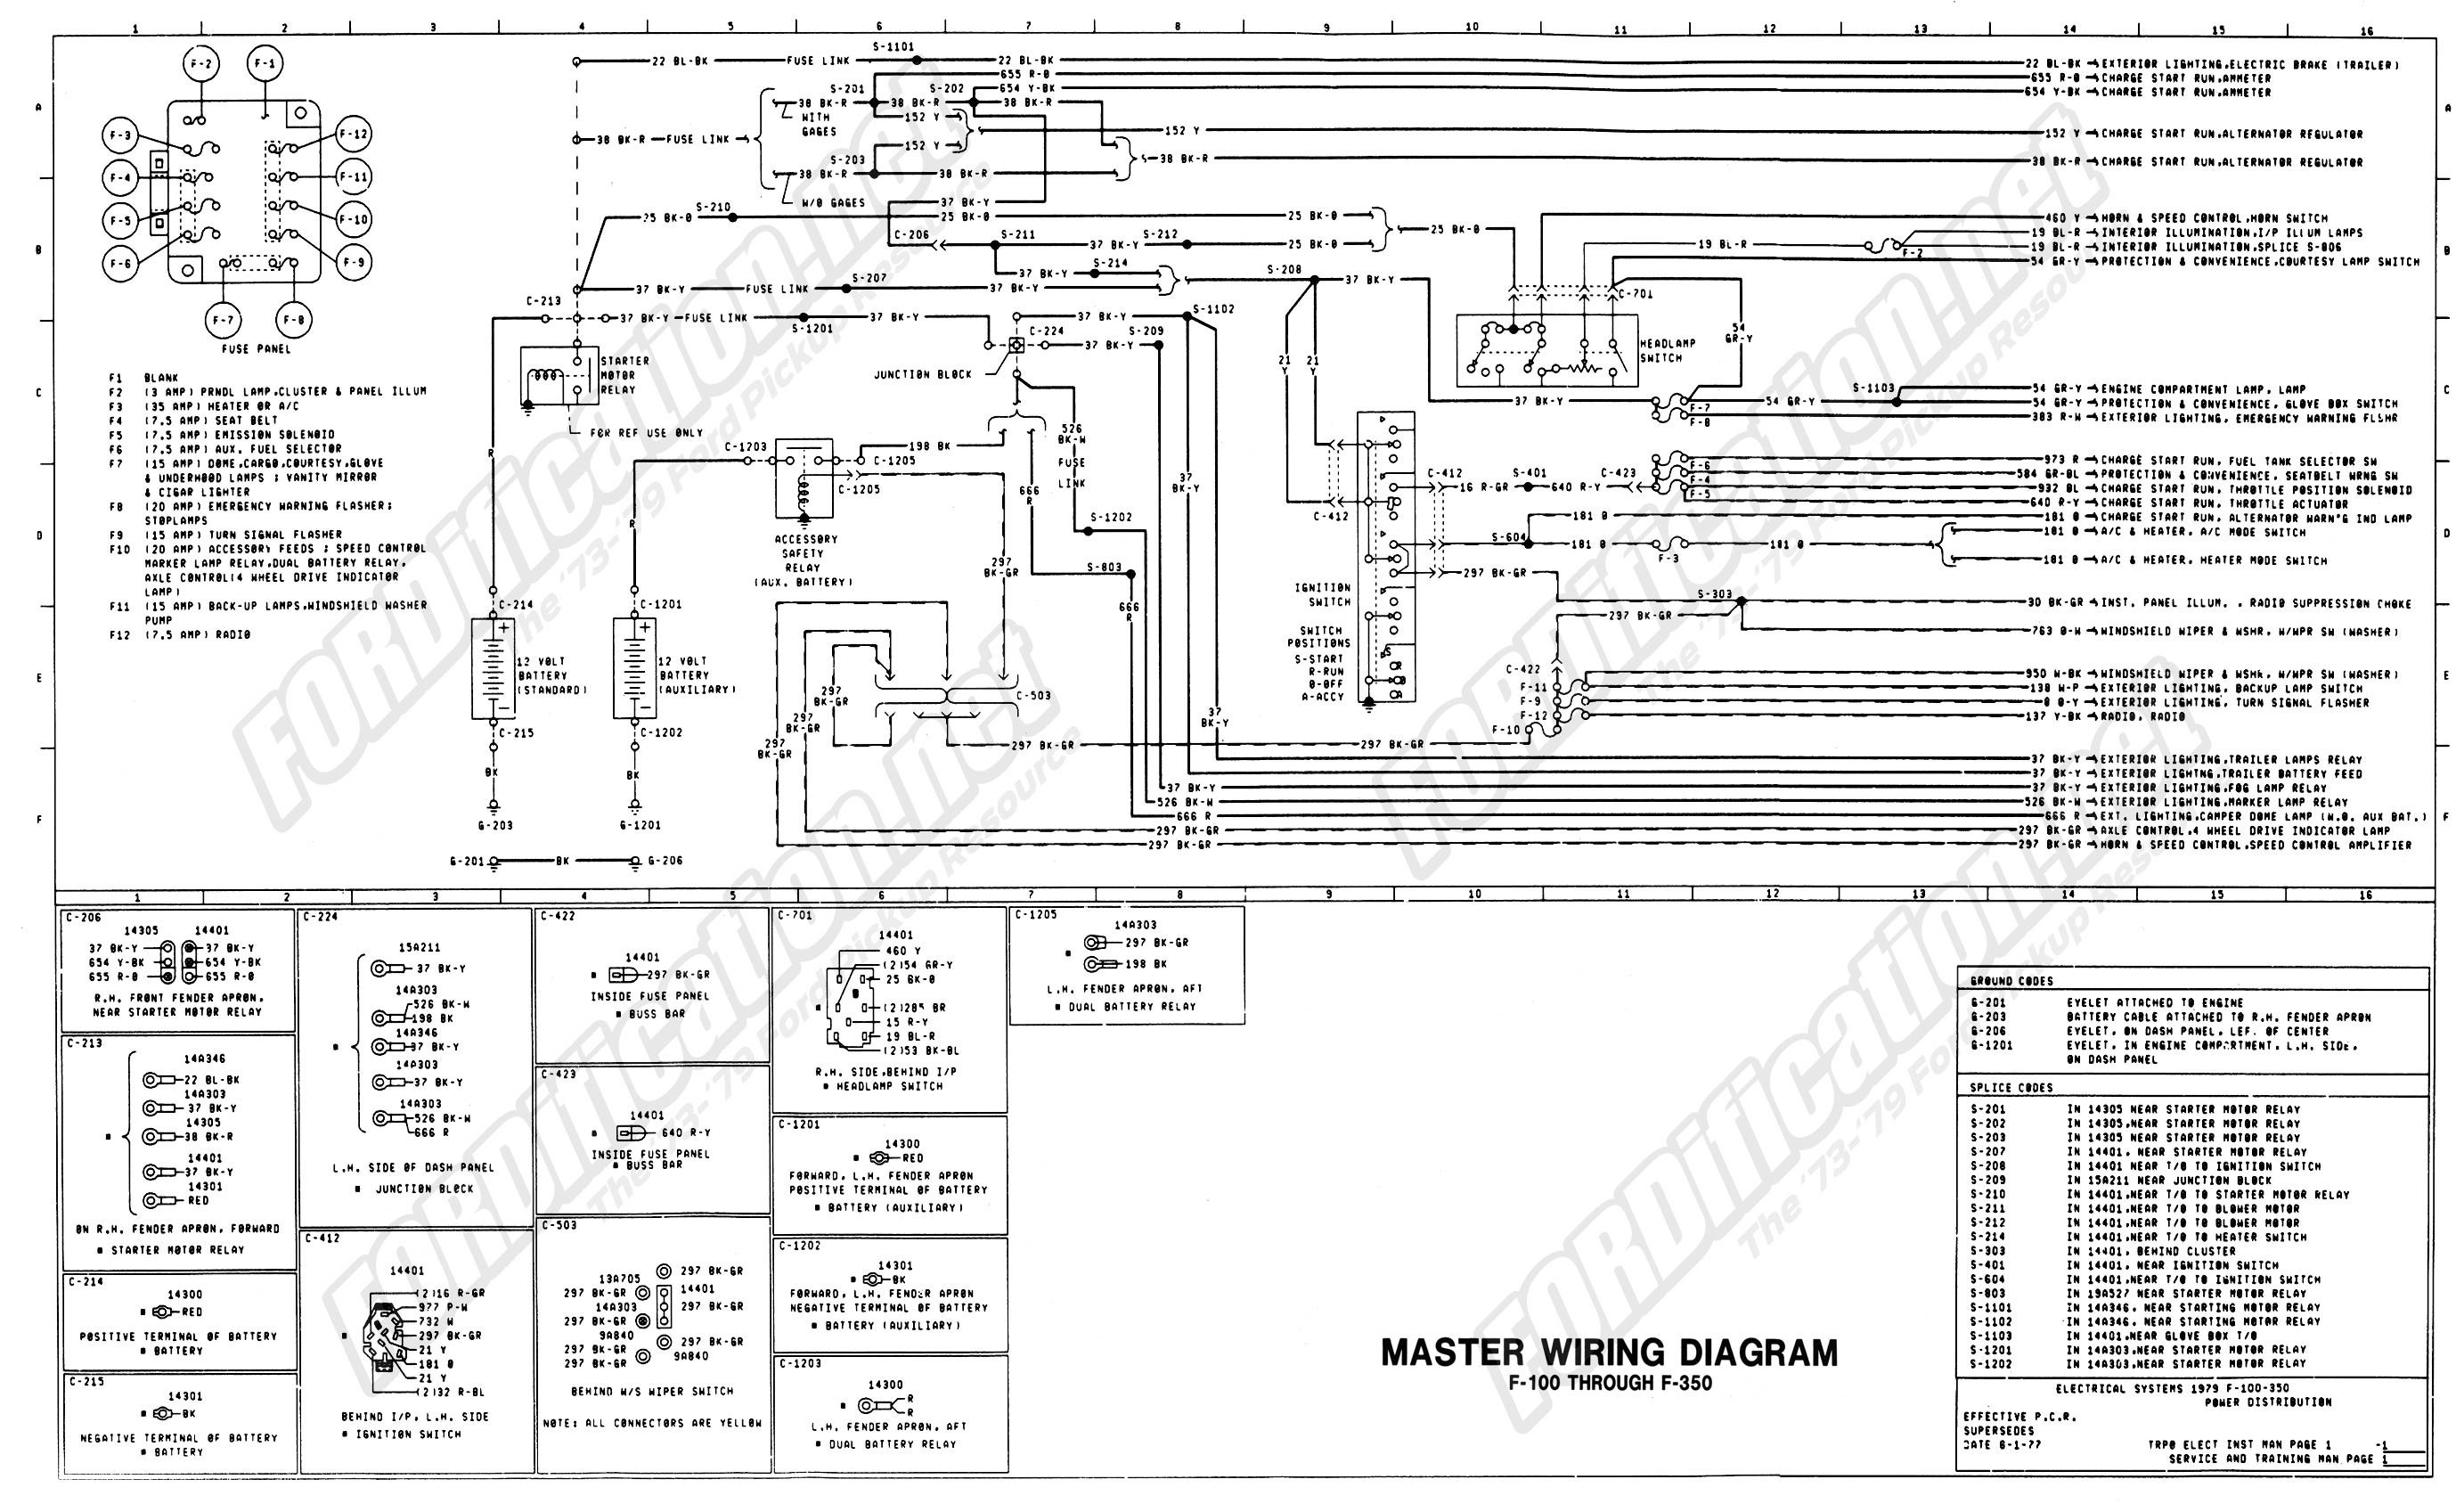 mack ch613 wiring diagram for 2009